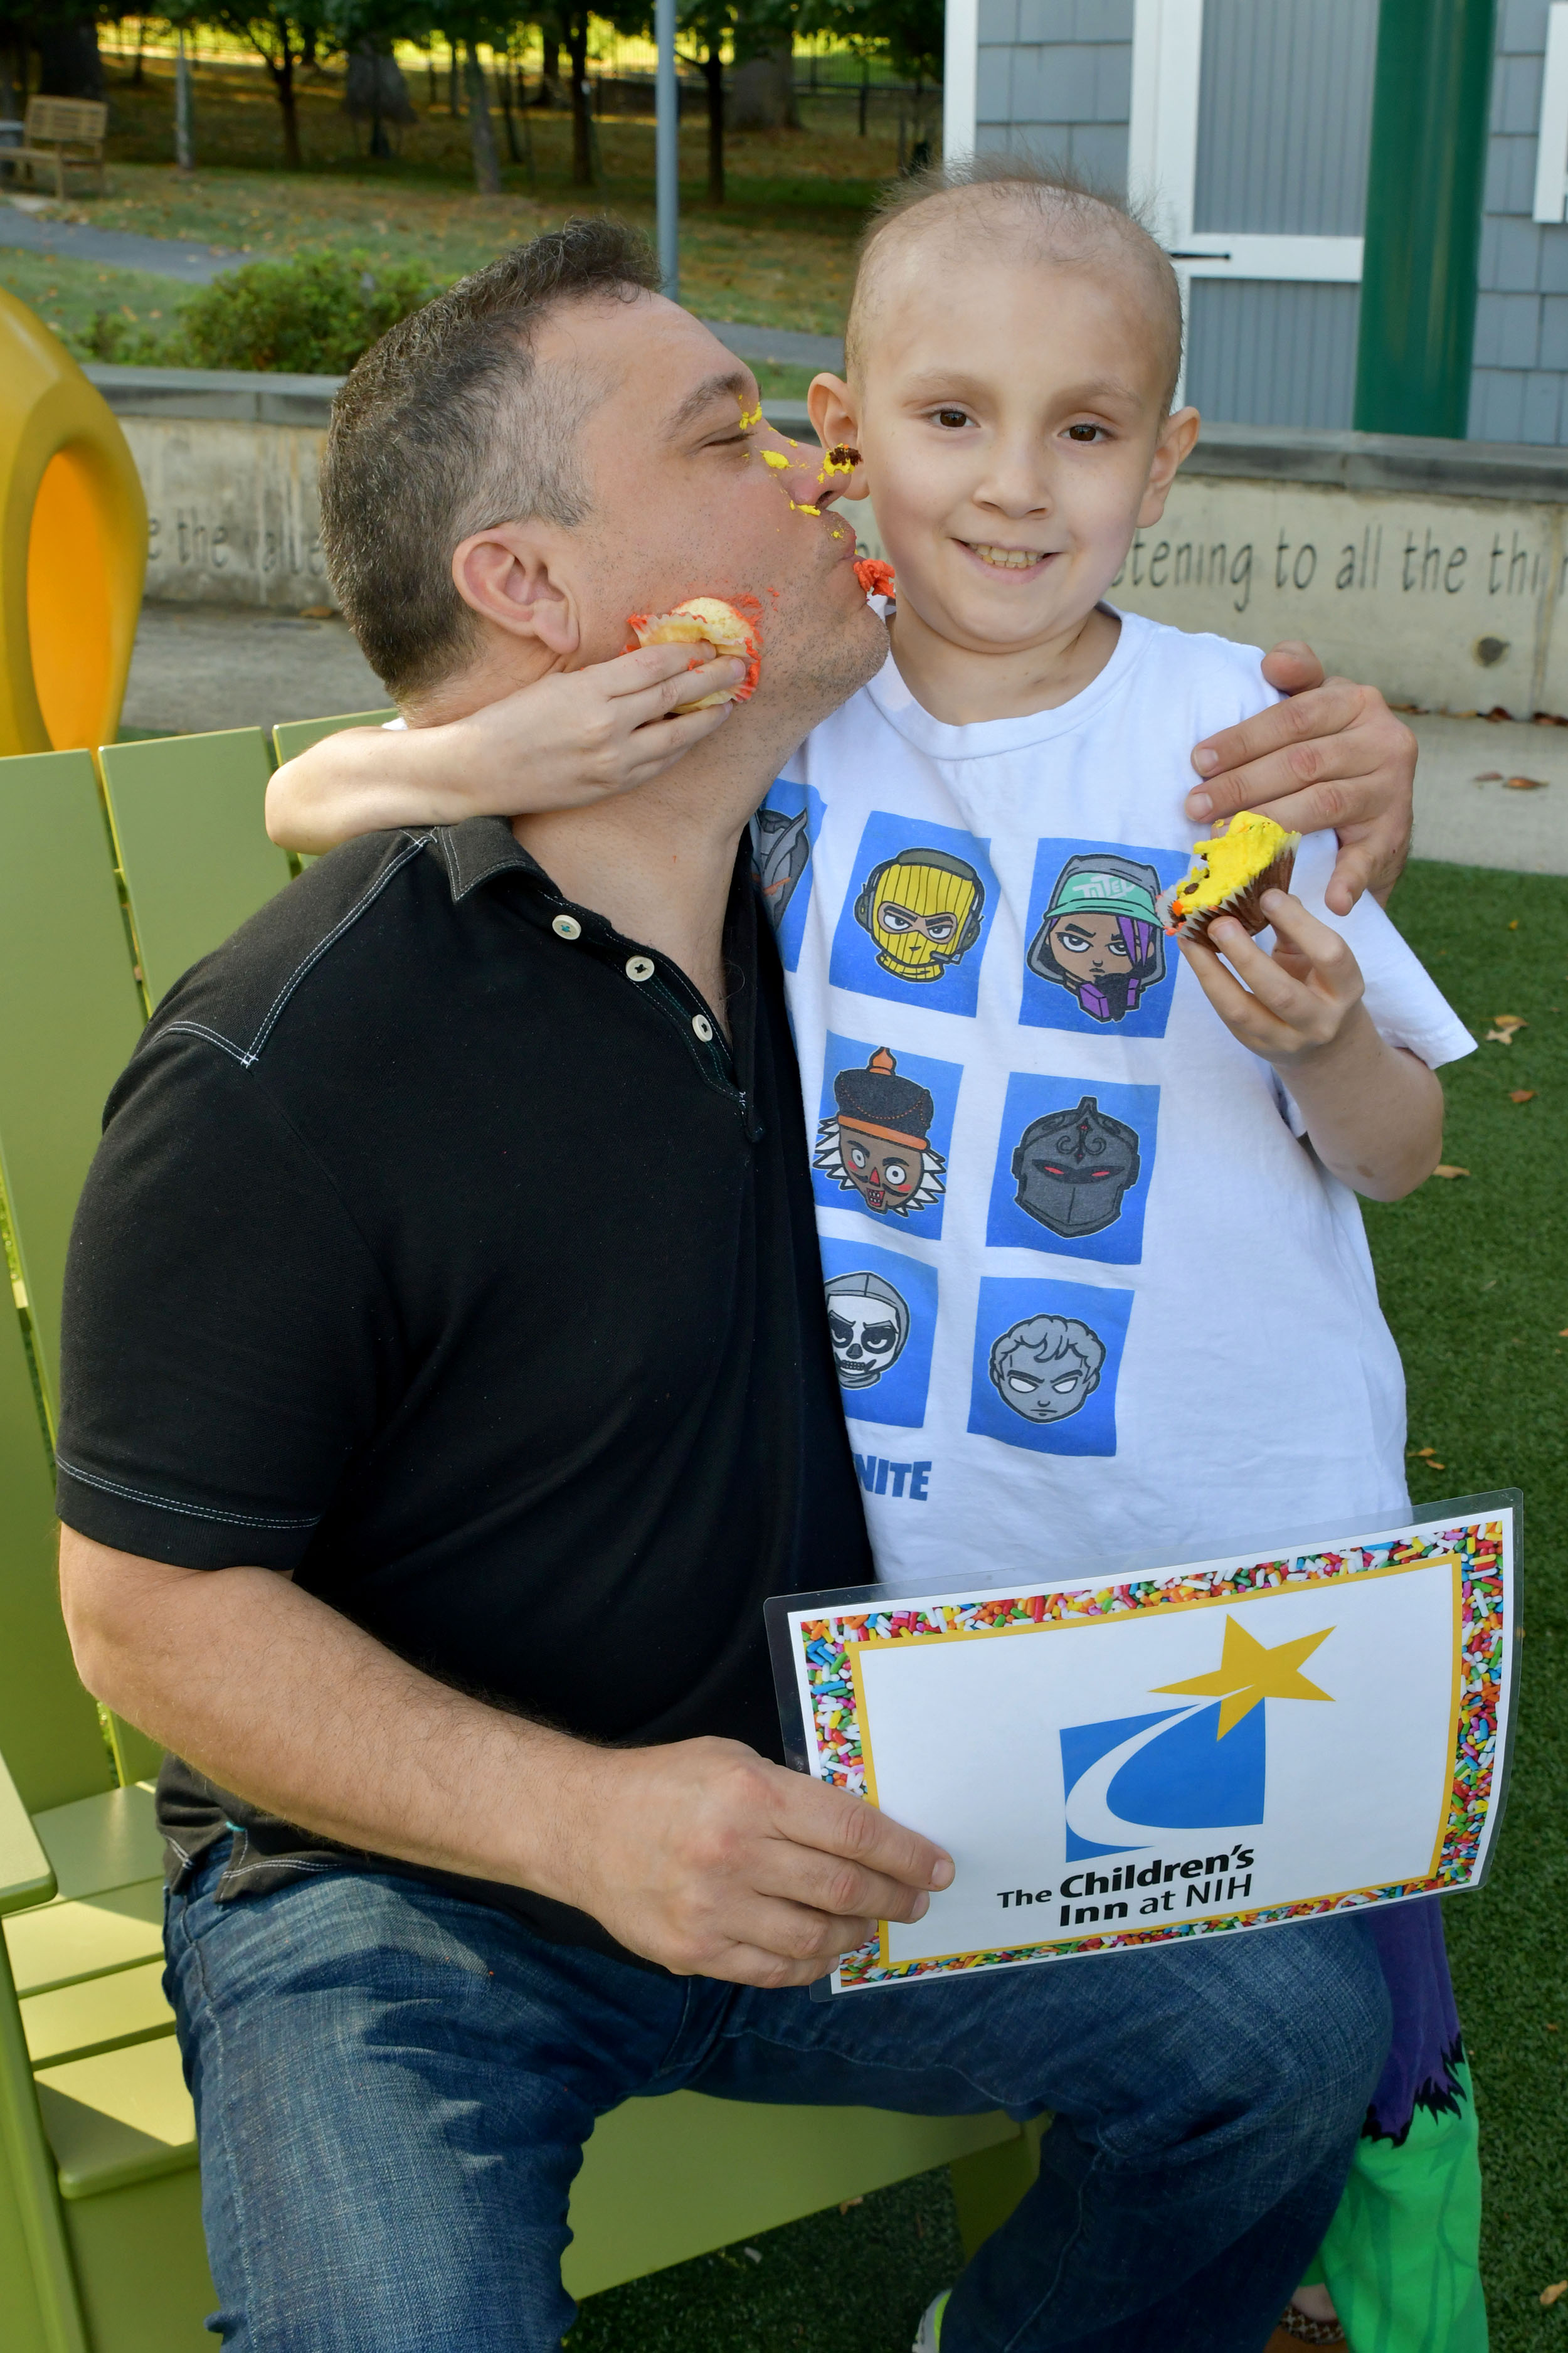 Inn resident Eduardo gets an icing kiss from his dad after caking him